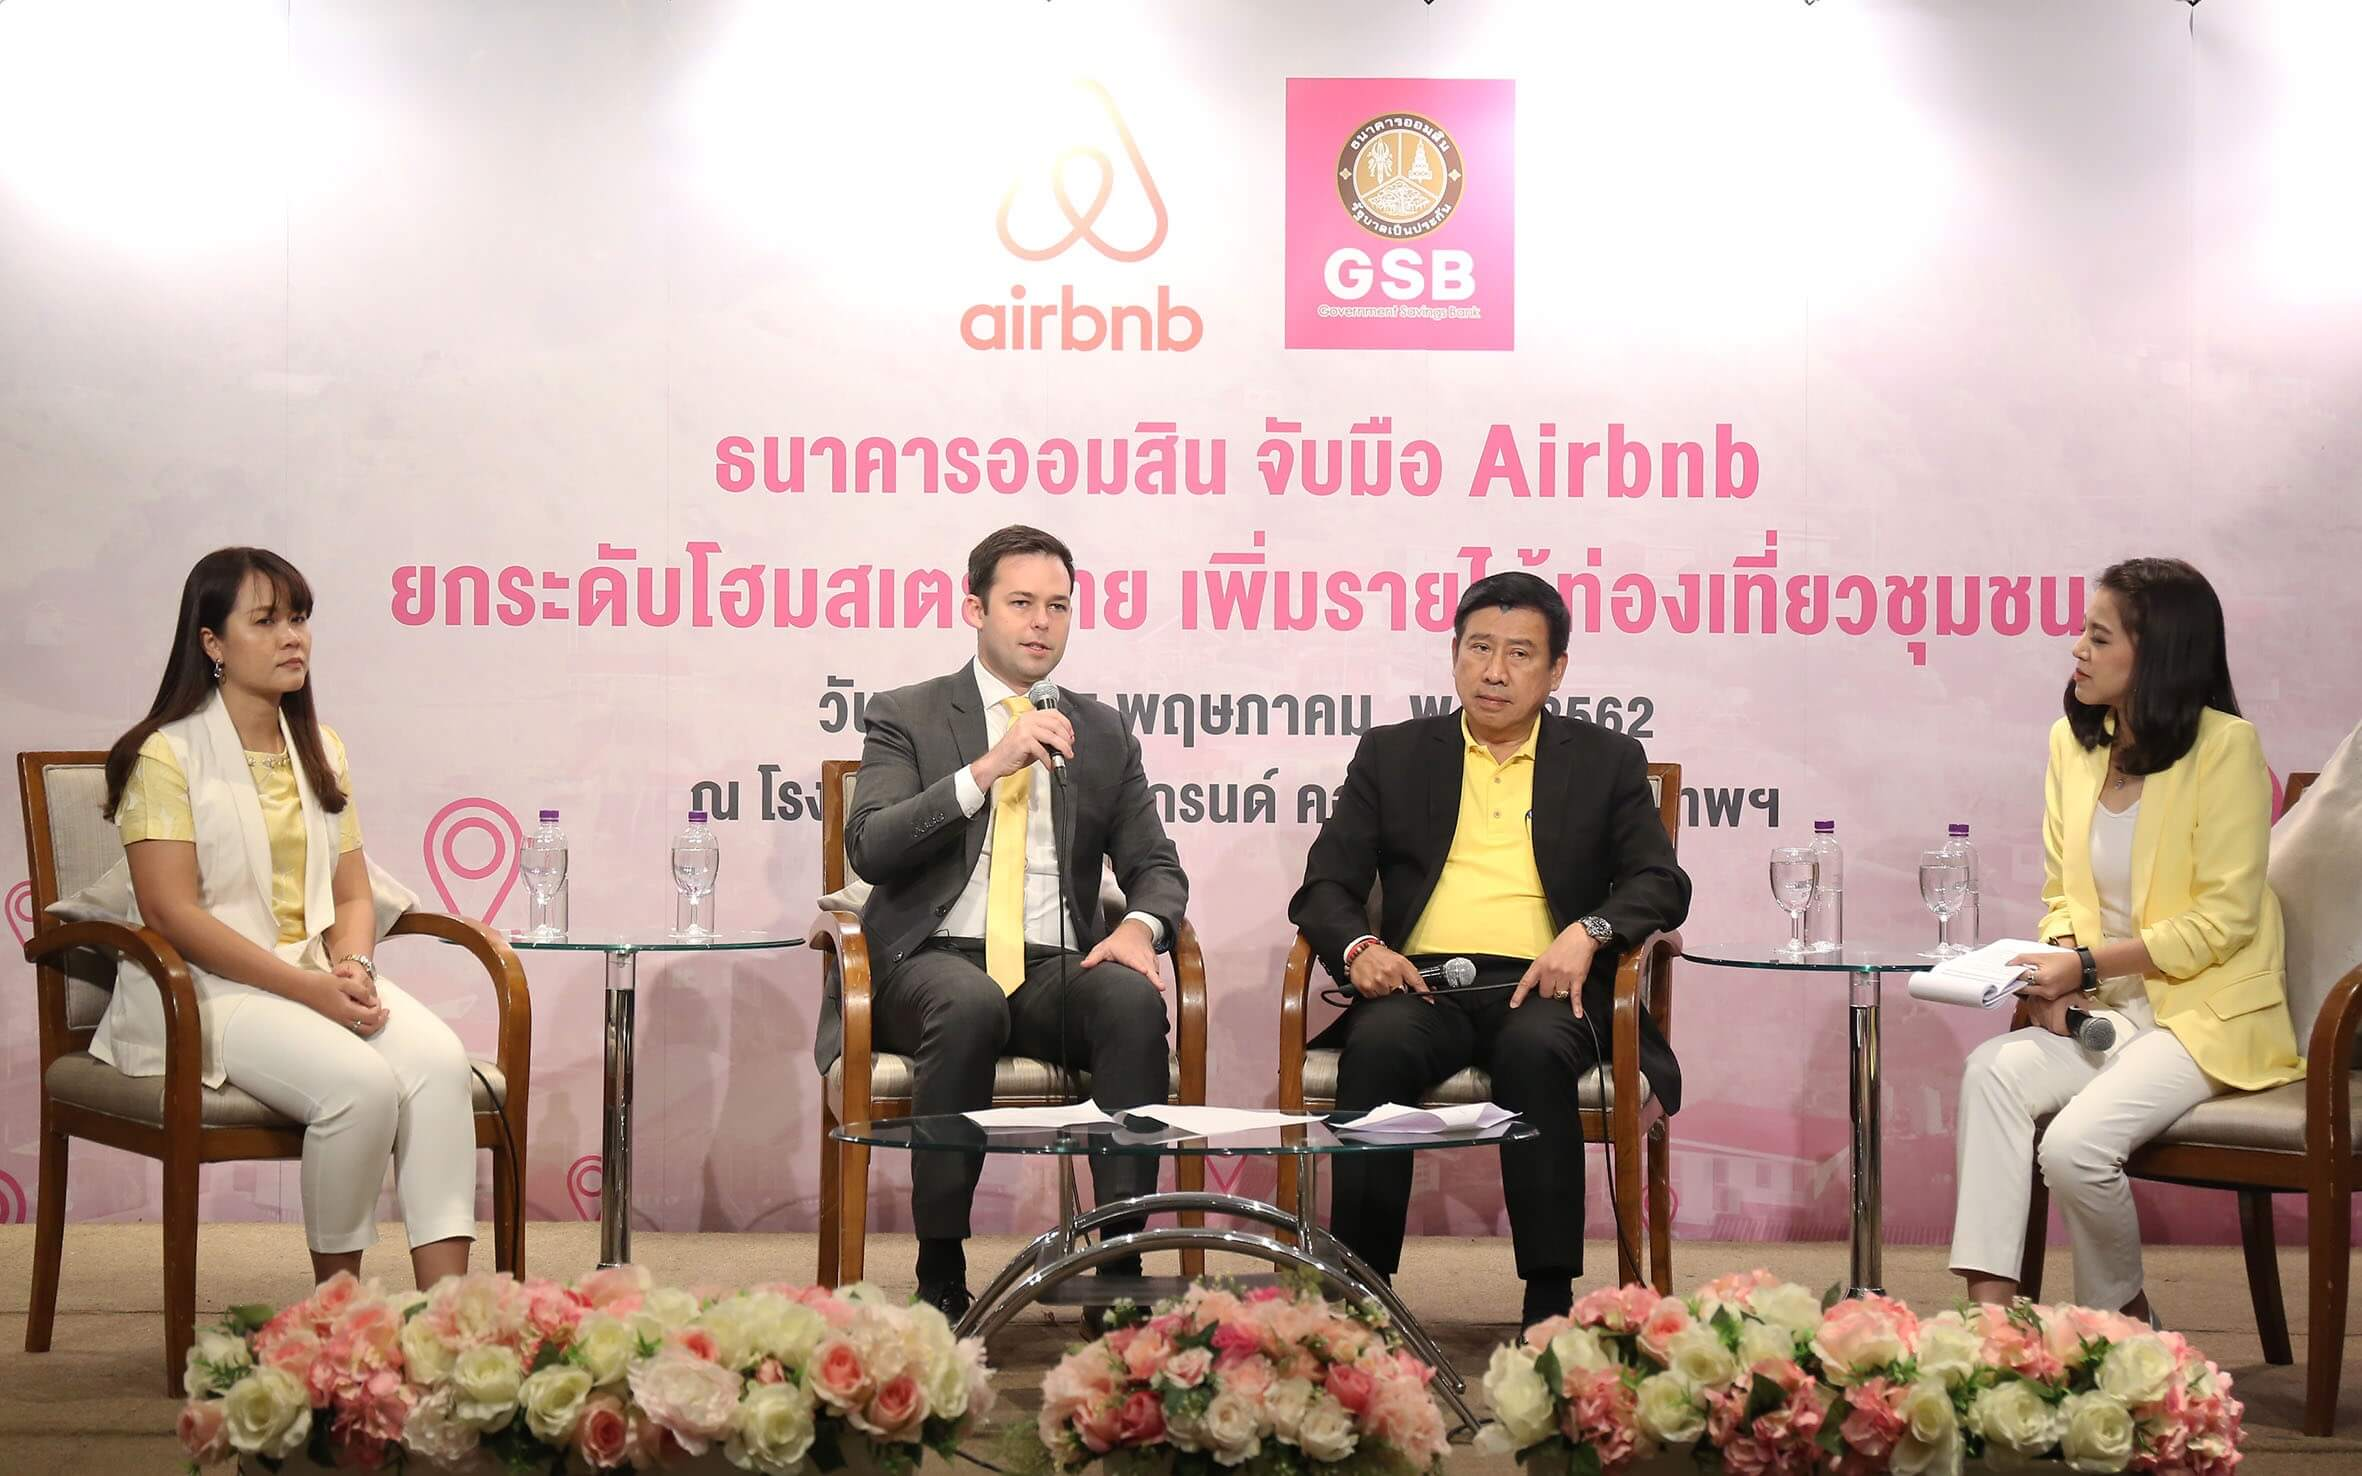 Dr.-Chatchai-Payuhanaveechai-GSB-President-and-CEO-and-Mike-Orgill-Airbnb-General-Manager-for-Southeast-Asia-Hong-Kong-and-Taiwan-joint-set-the-partnership